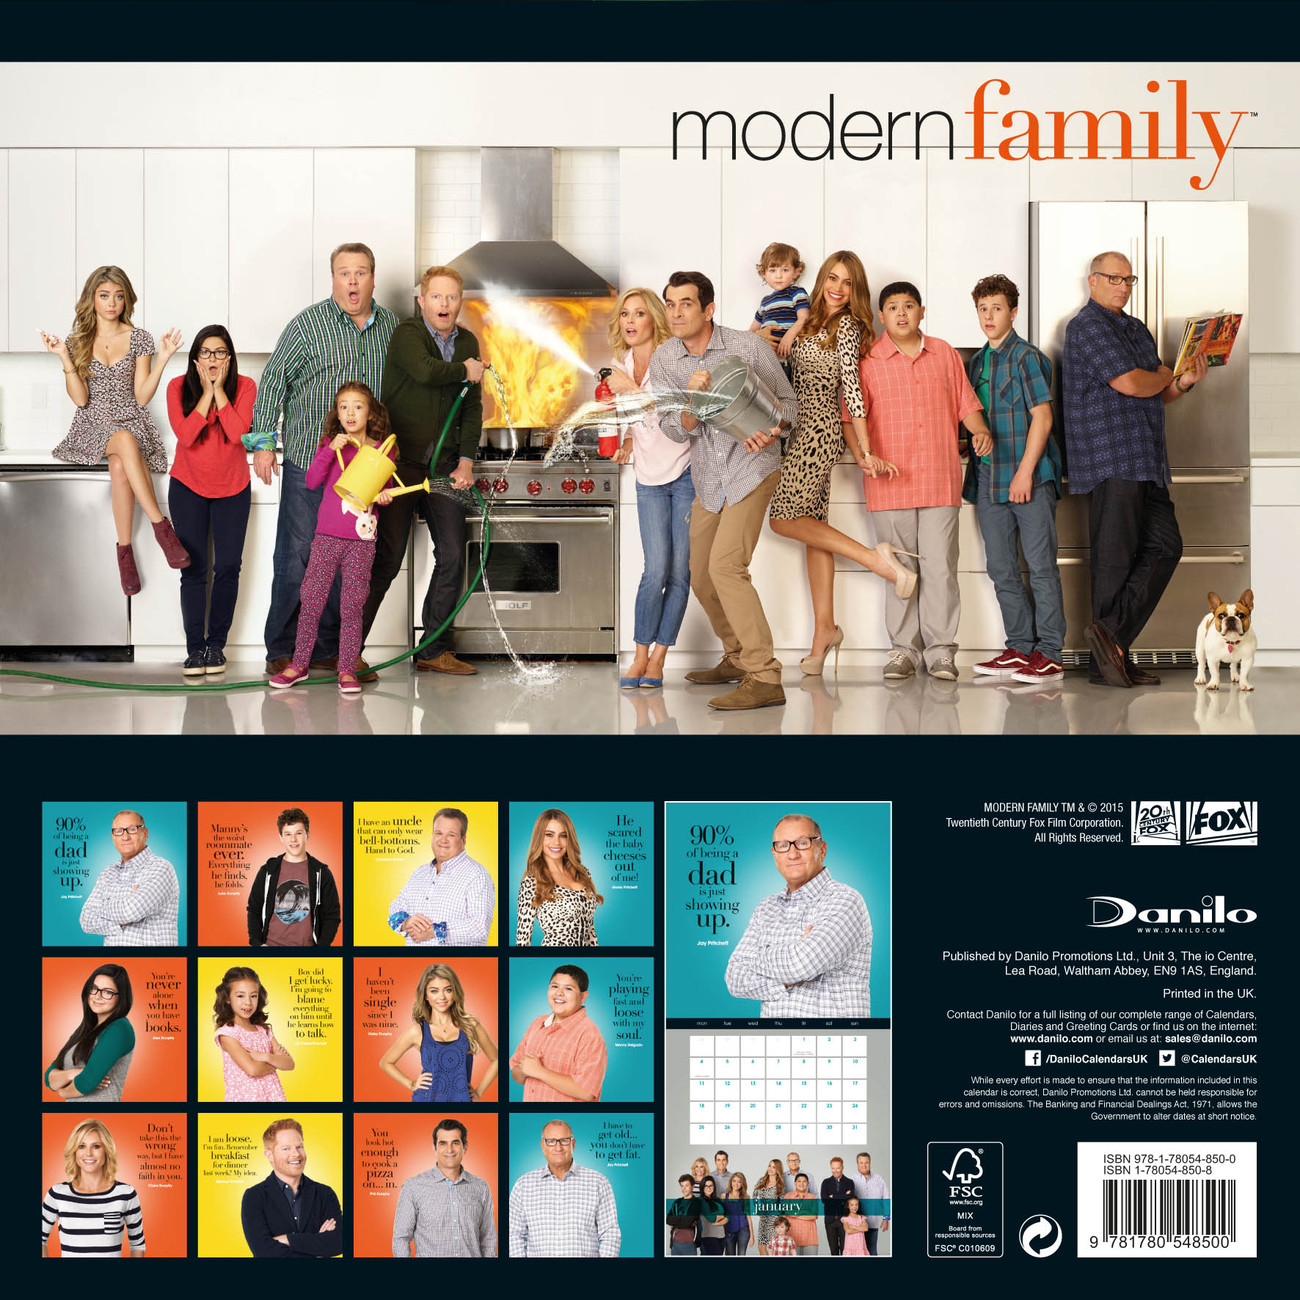 modern family watching television Modern family is an abc situation comedy the show debuted in 2009 and ended it's first season in 2010 the show has a stellar cast from julie bowen who plays claire to ed o'neil who plays jay pritchett.